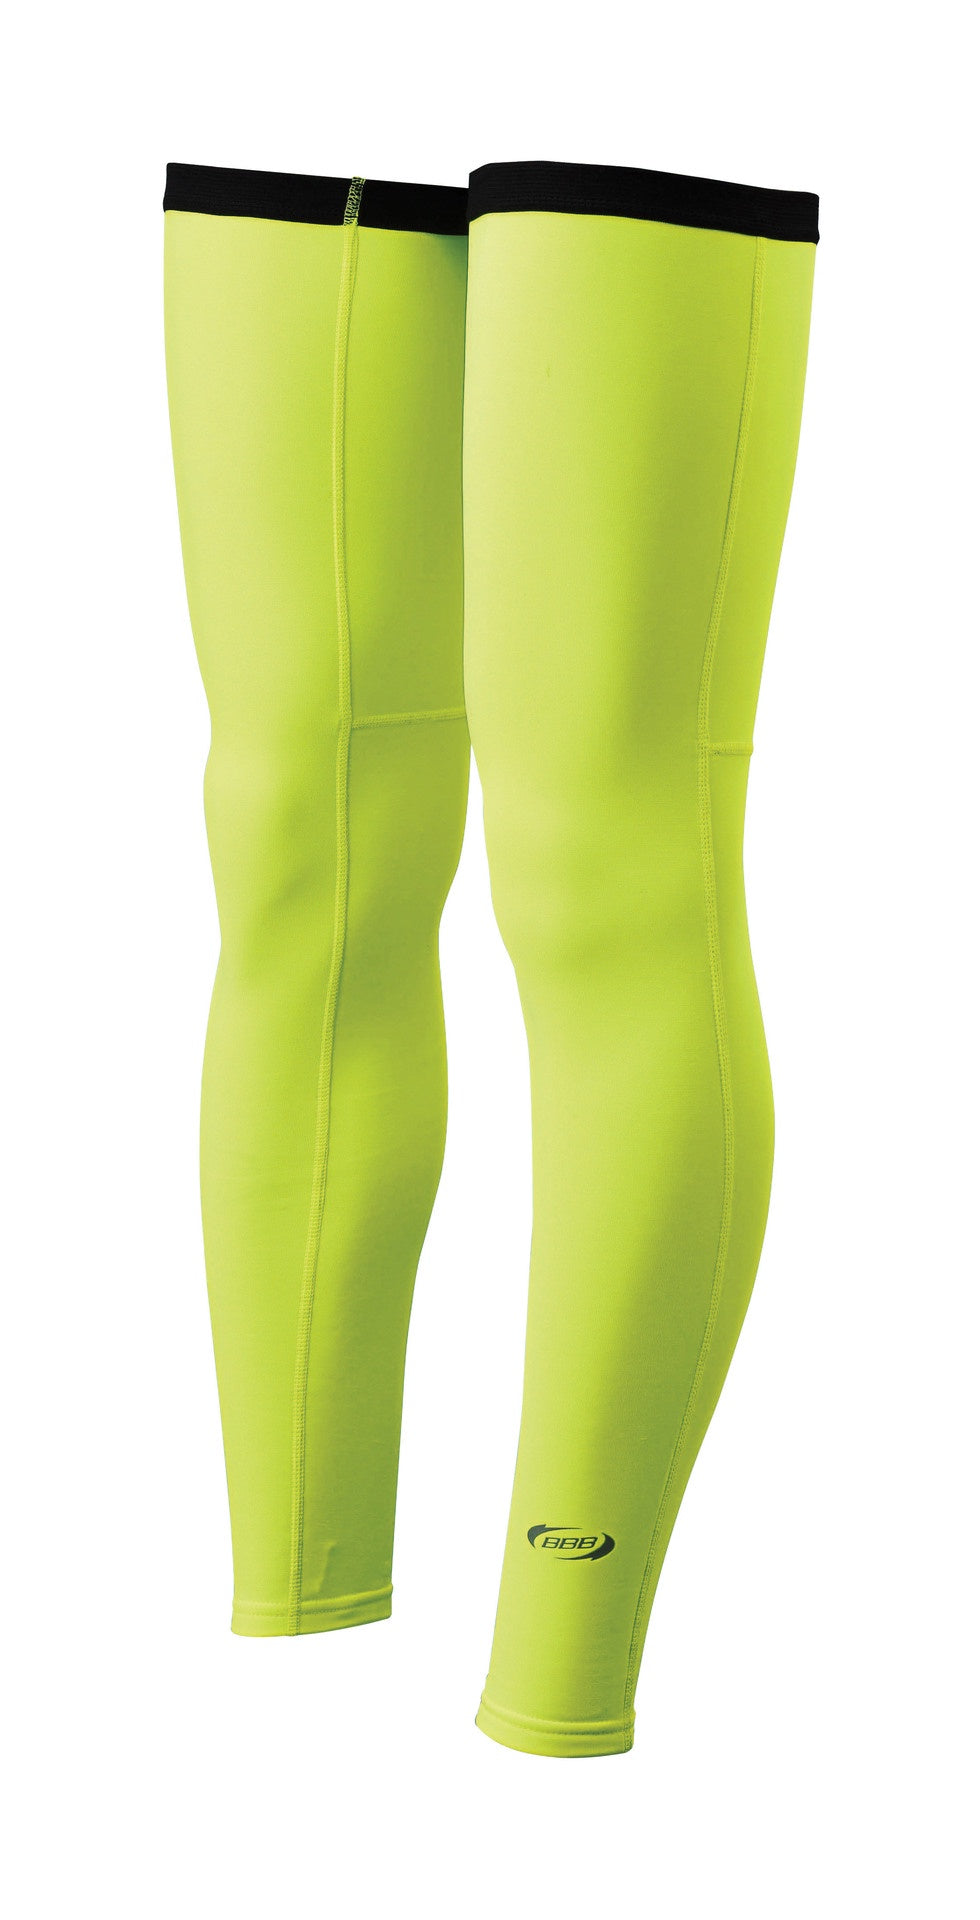 ComfortLegs Leg Warmers (Neon Yellow, S)